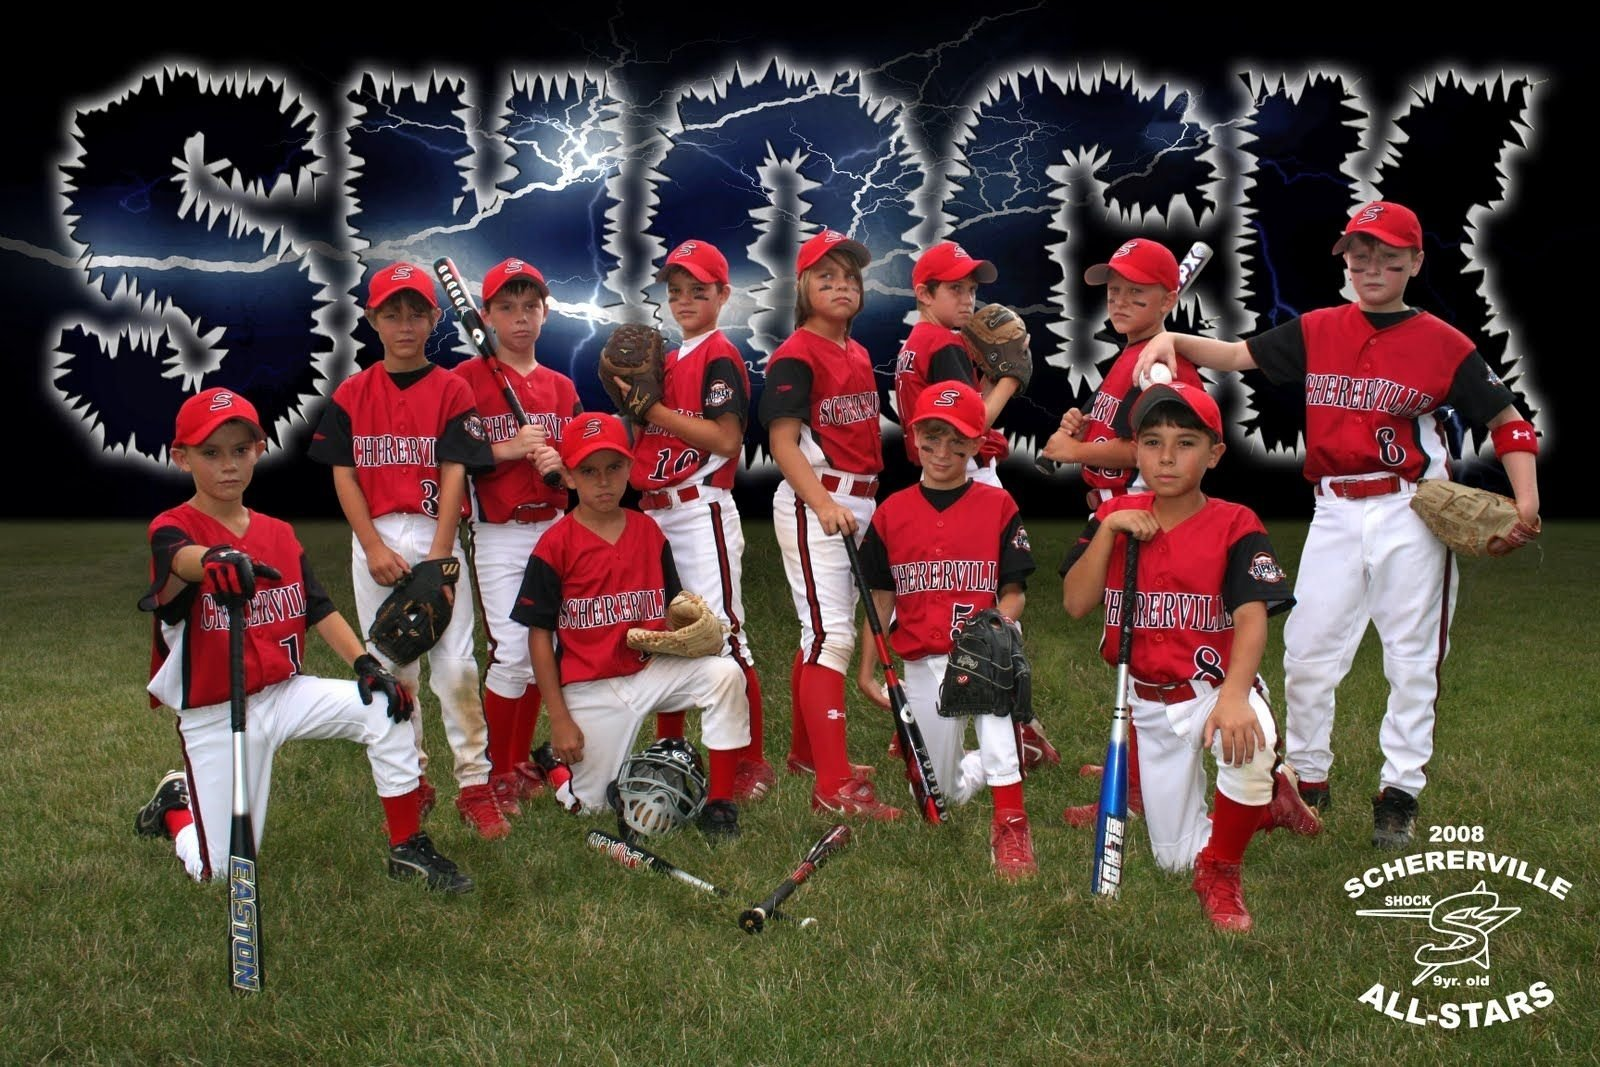 10 Stylish T Ball Team Name Ideas baseball team pictures ideas the background and added the team 1